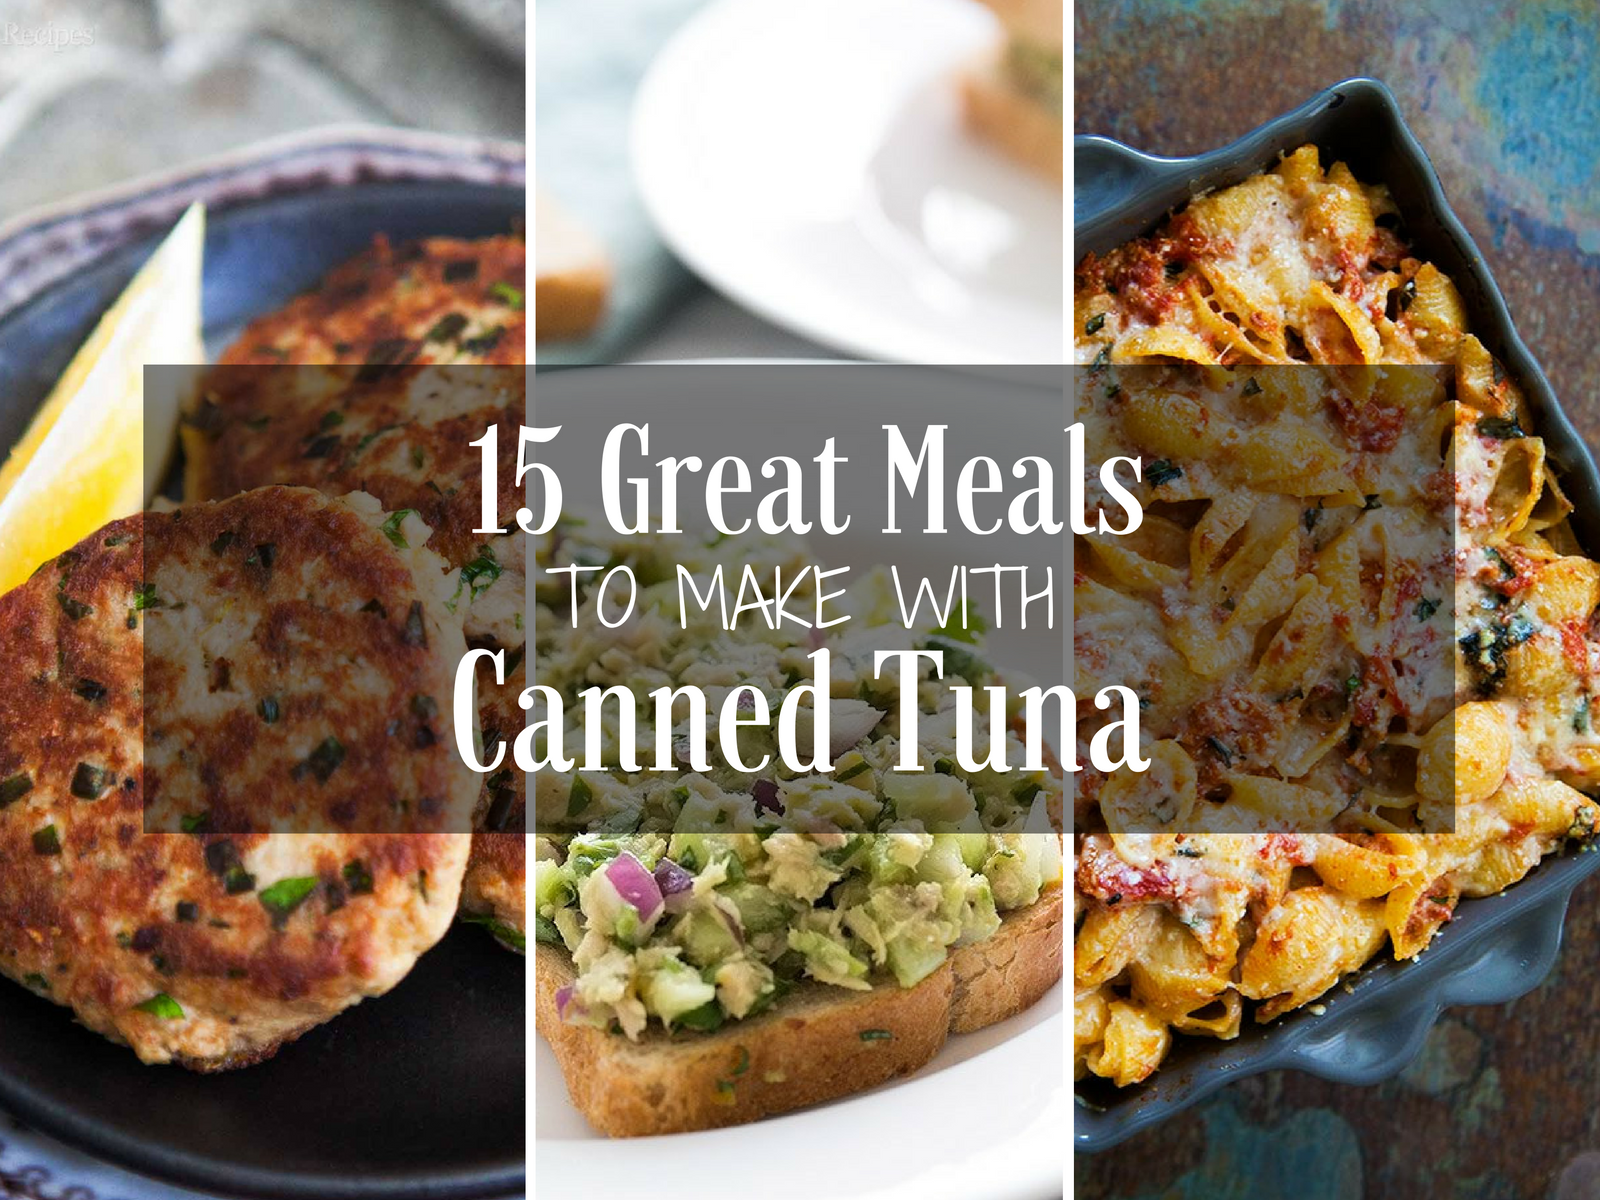 15 Great Meals To Make With Canned Tuna